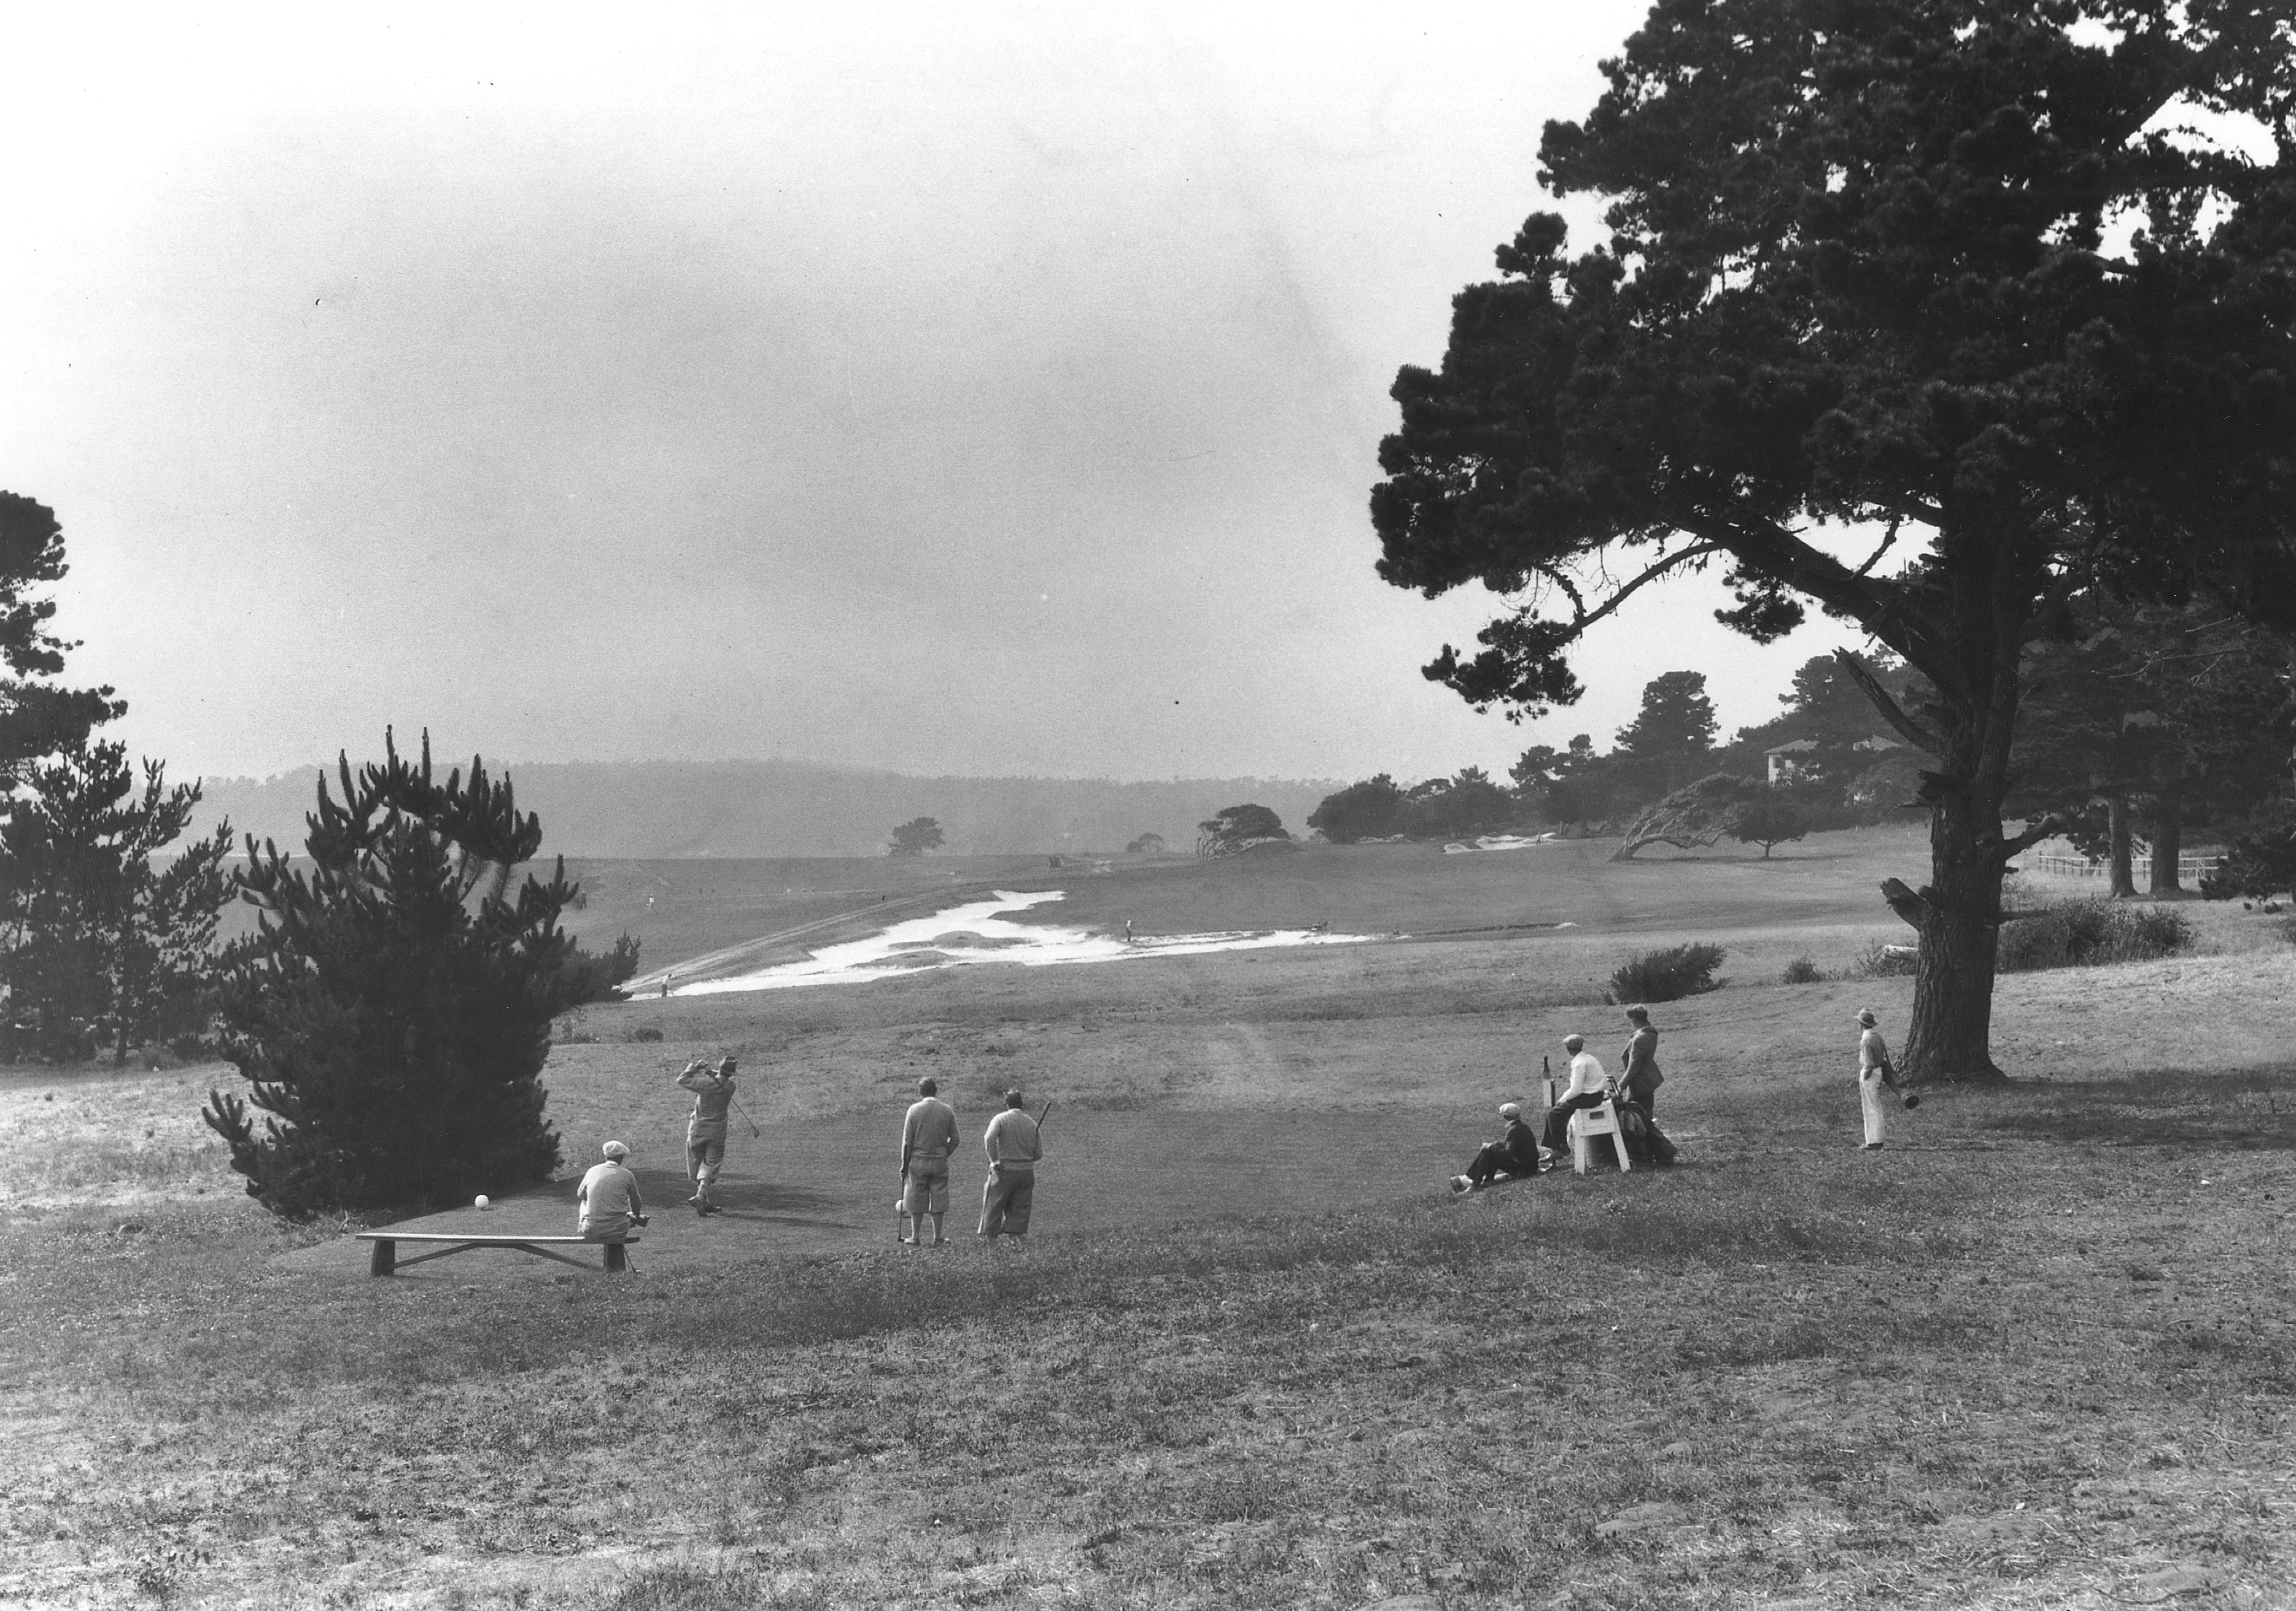 13th hole Alister MacKenzie bunkering